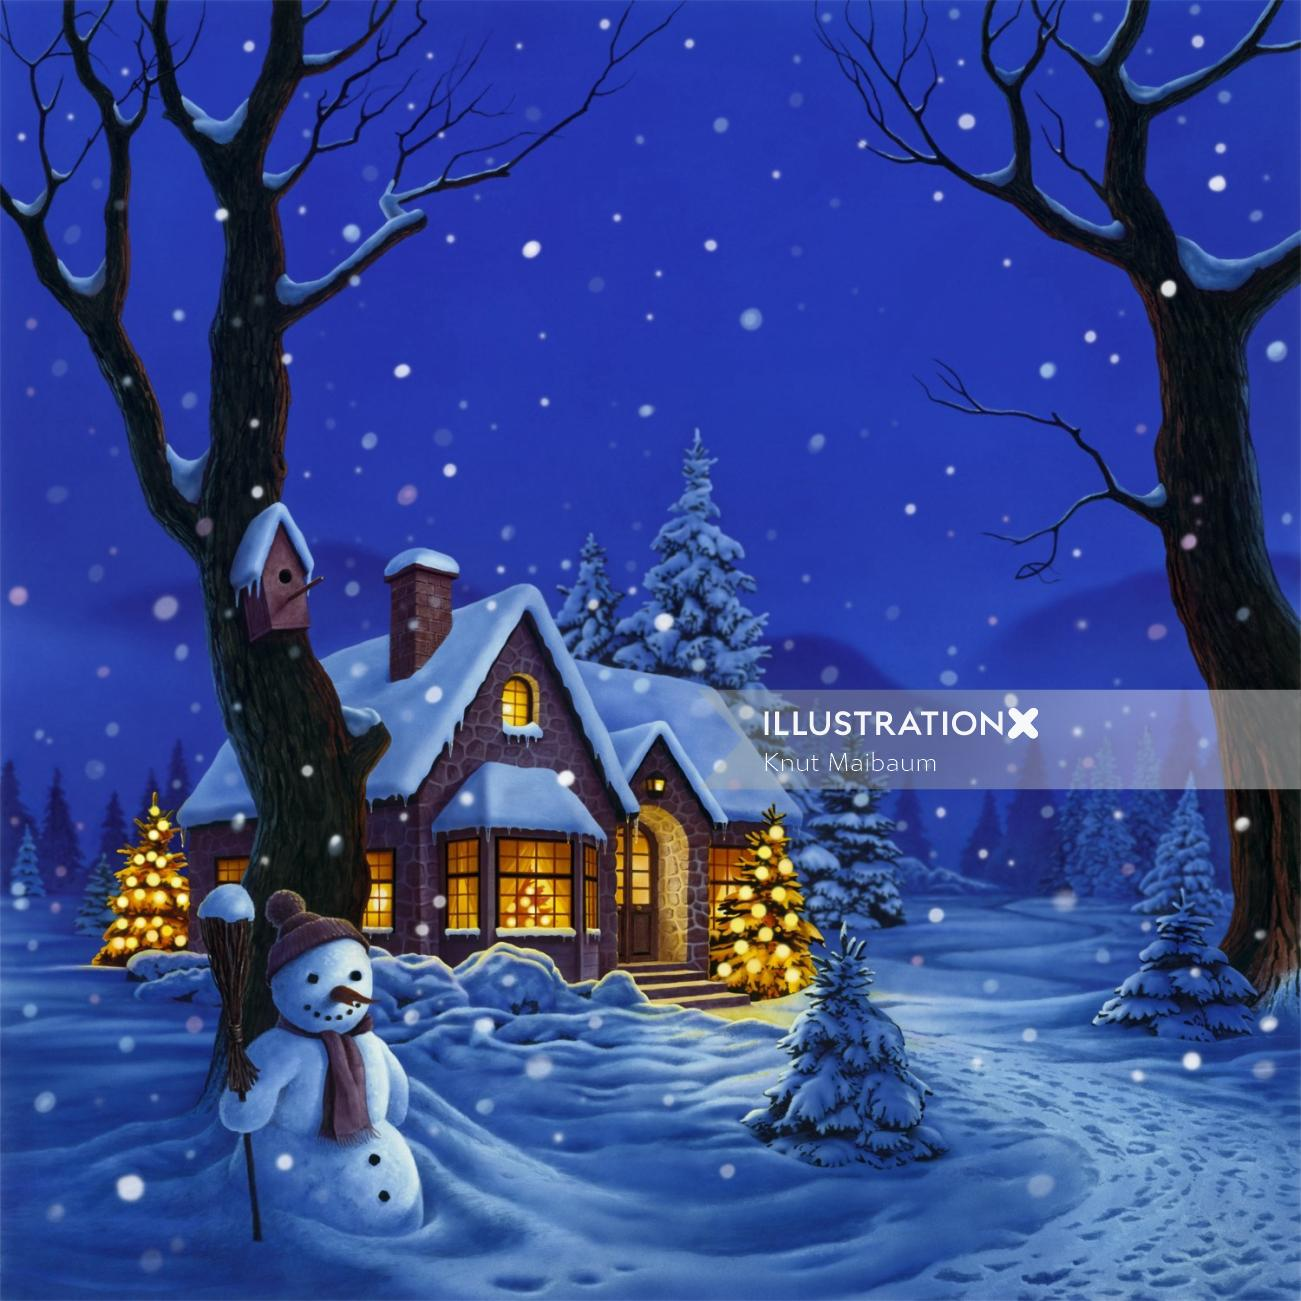 Landscape of a snowy house